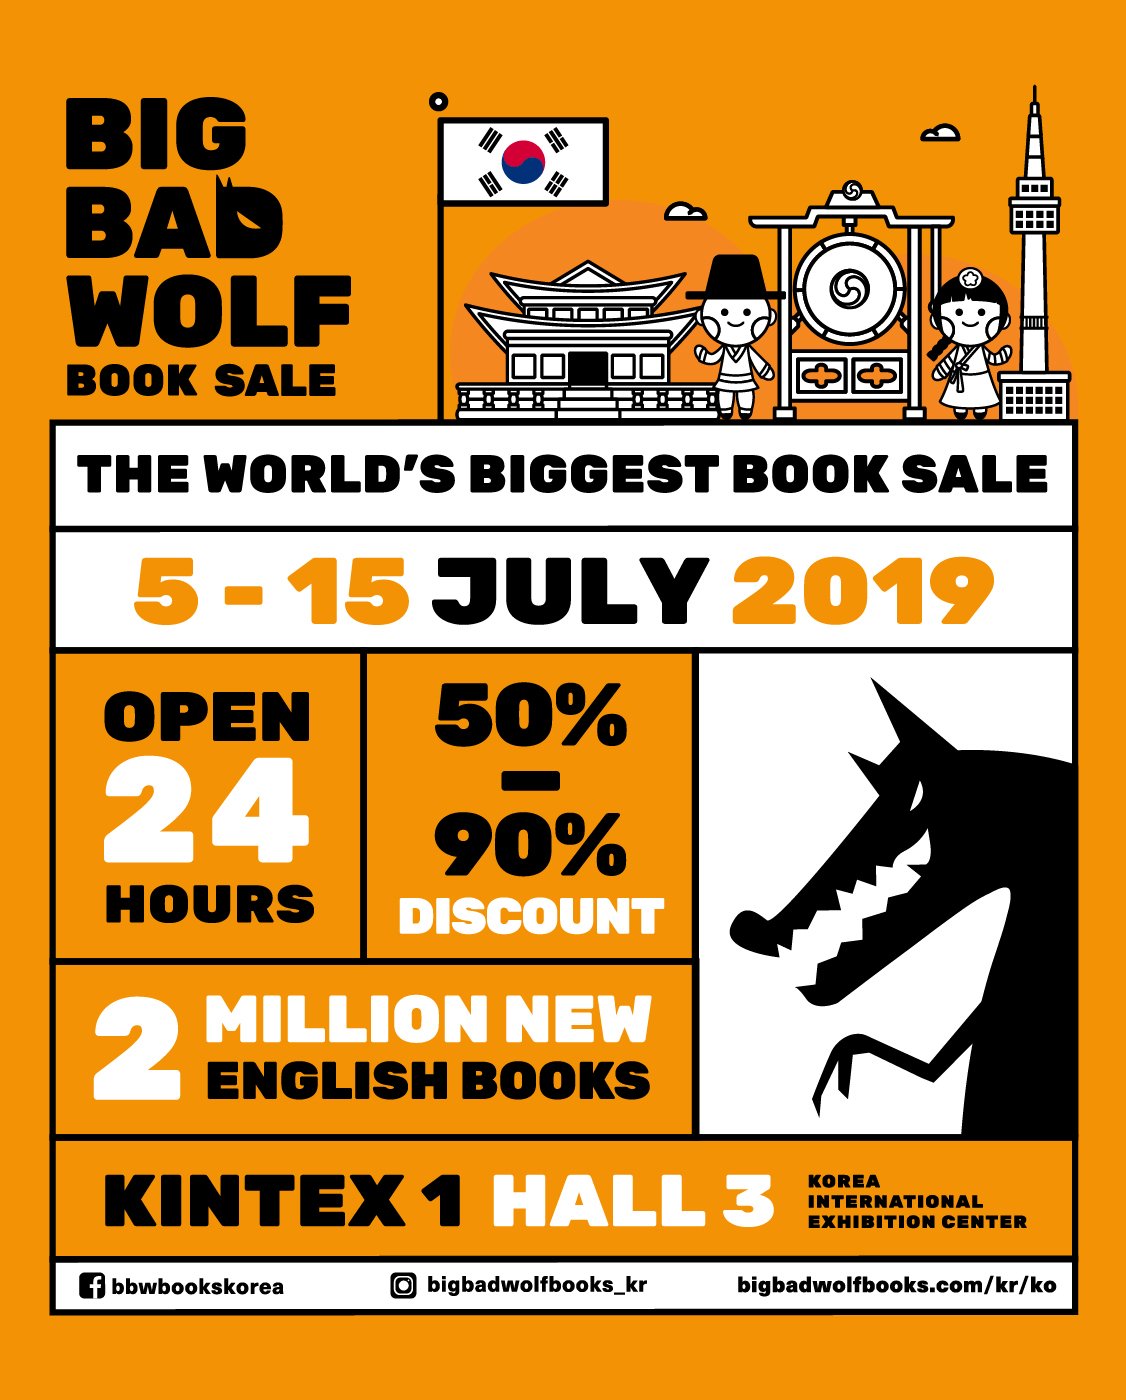 As Big Bad Wolf South Korea winds up, BBW is already live in